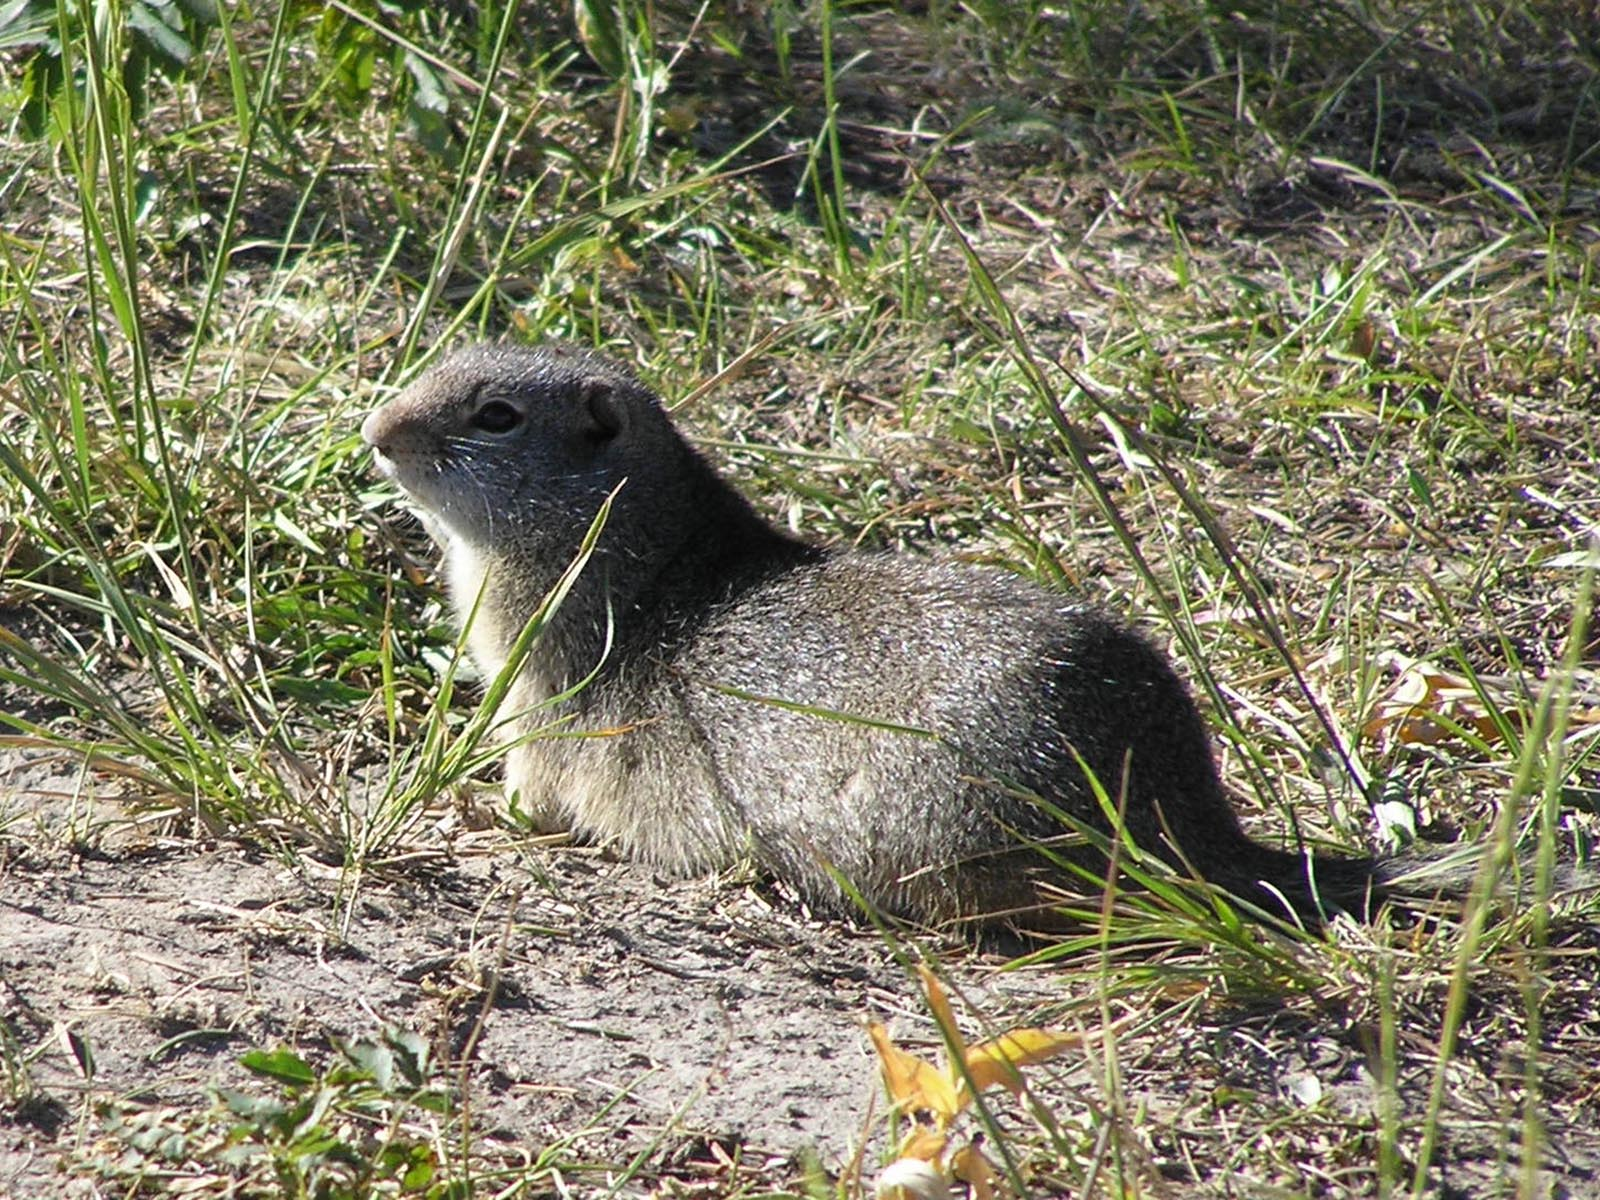 Uinta Ground Squirrel, Grand Teton National Park, Wyoming | Photo Credit: NPS